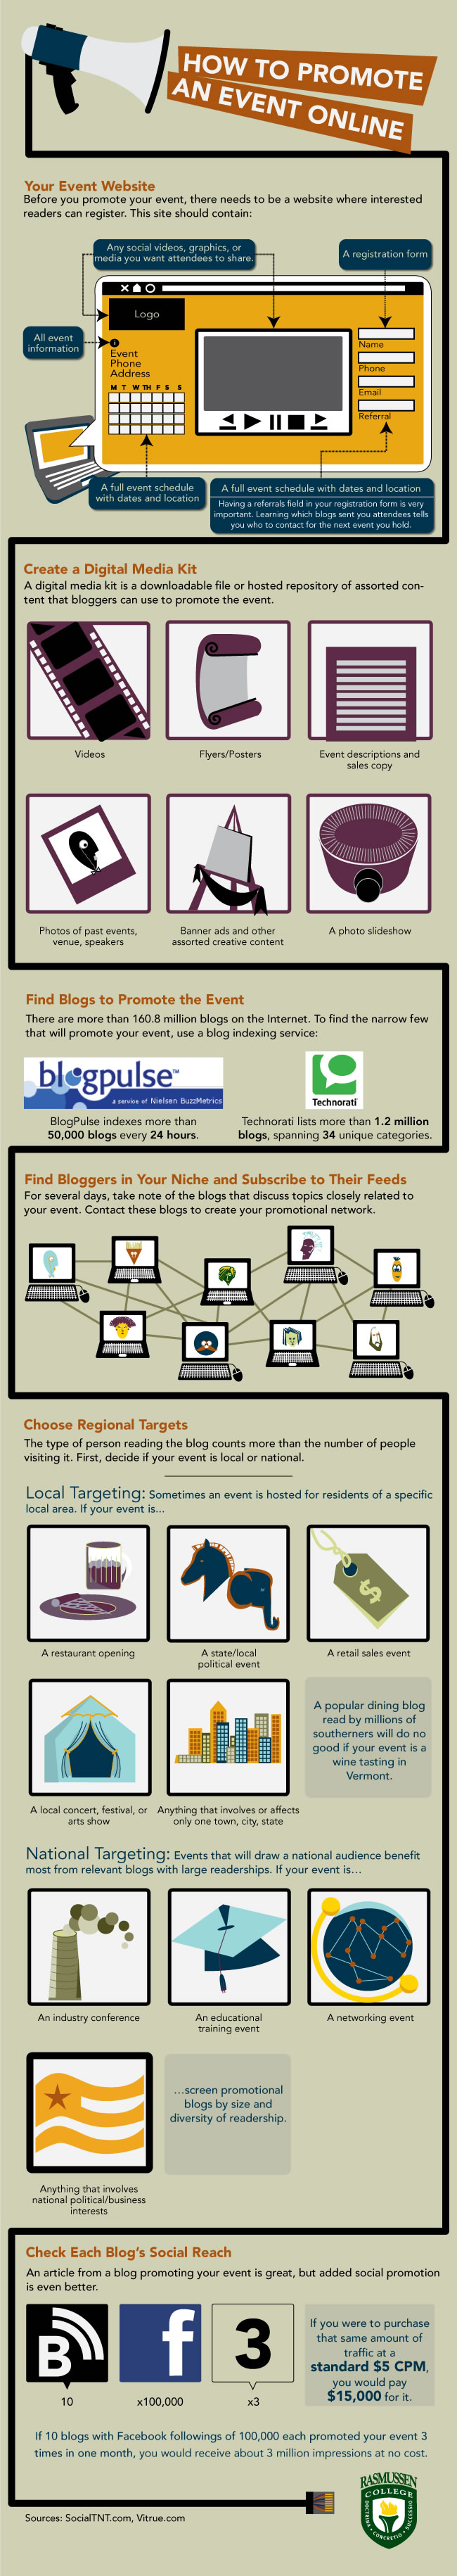 How to Promote an Event Online - infographic